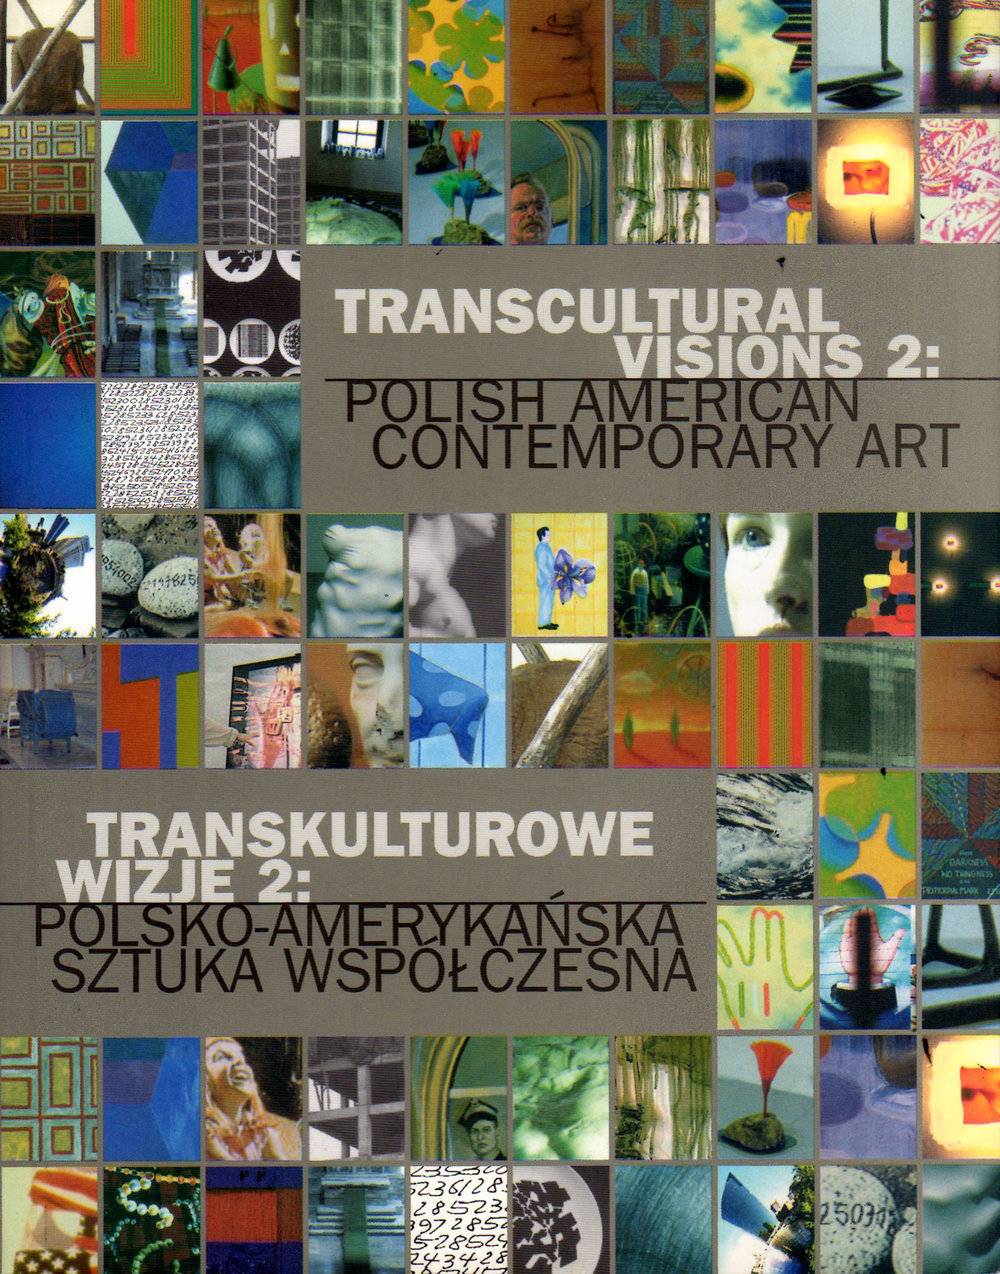 Transcultural Visions 2: Polish American Contemporary Art  was published in conjunction with an exhibition curated by Elżbieta Kościelak and Małgorzata Kościelak.  Transcultural Visions  was shown at the Hyde Park Art Center and the National Museum in Szczecin, Poland. This book, with essays by Corey Postiglione and Robert J. Loescsher, reflects on global flows and the Polish immigrant American experience.